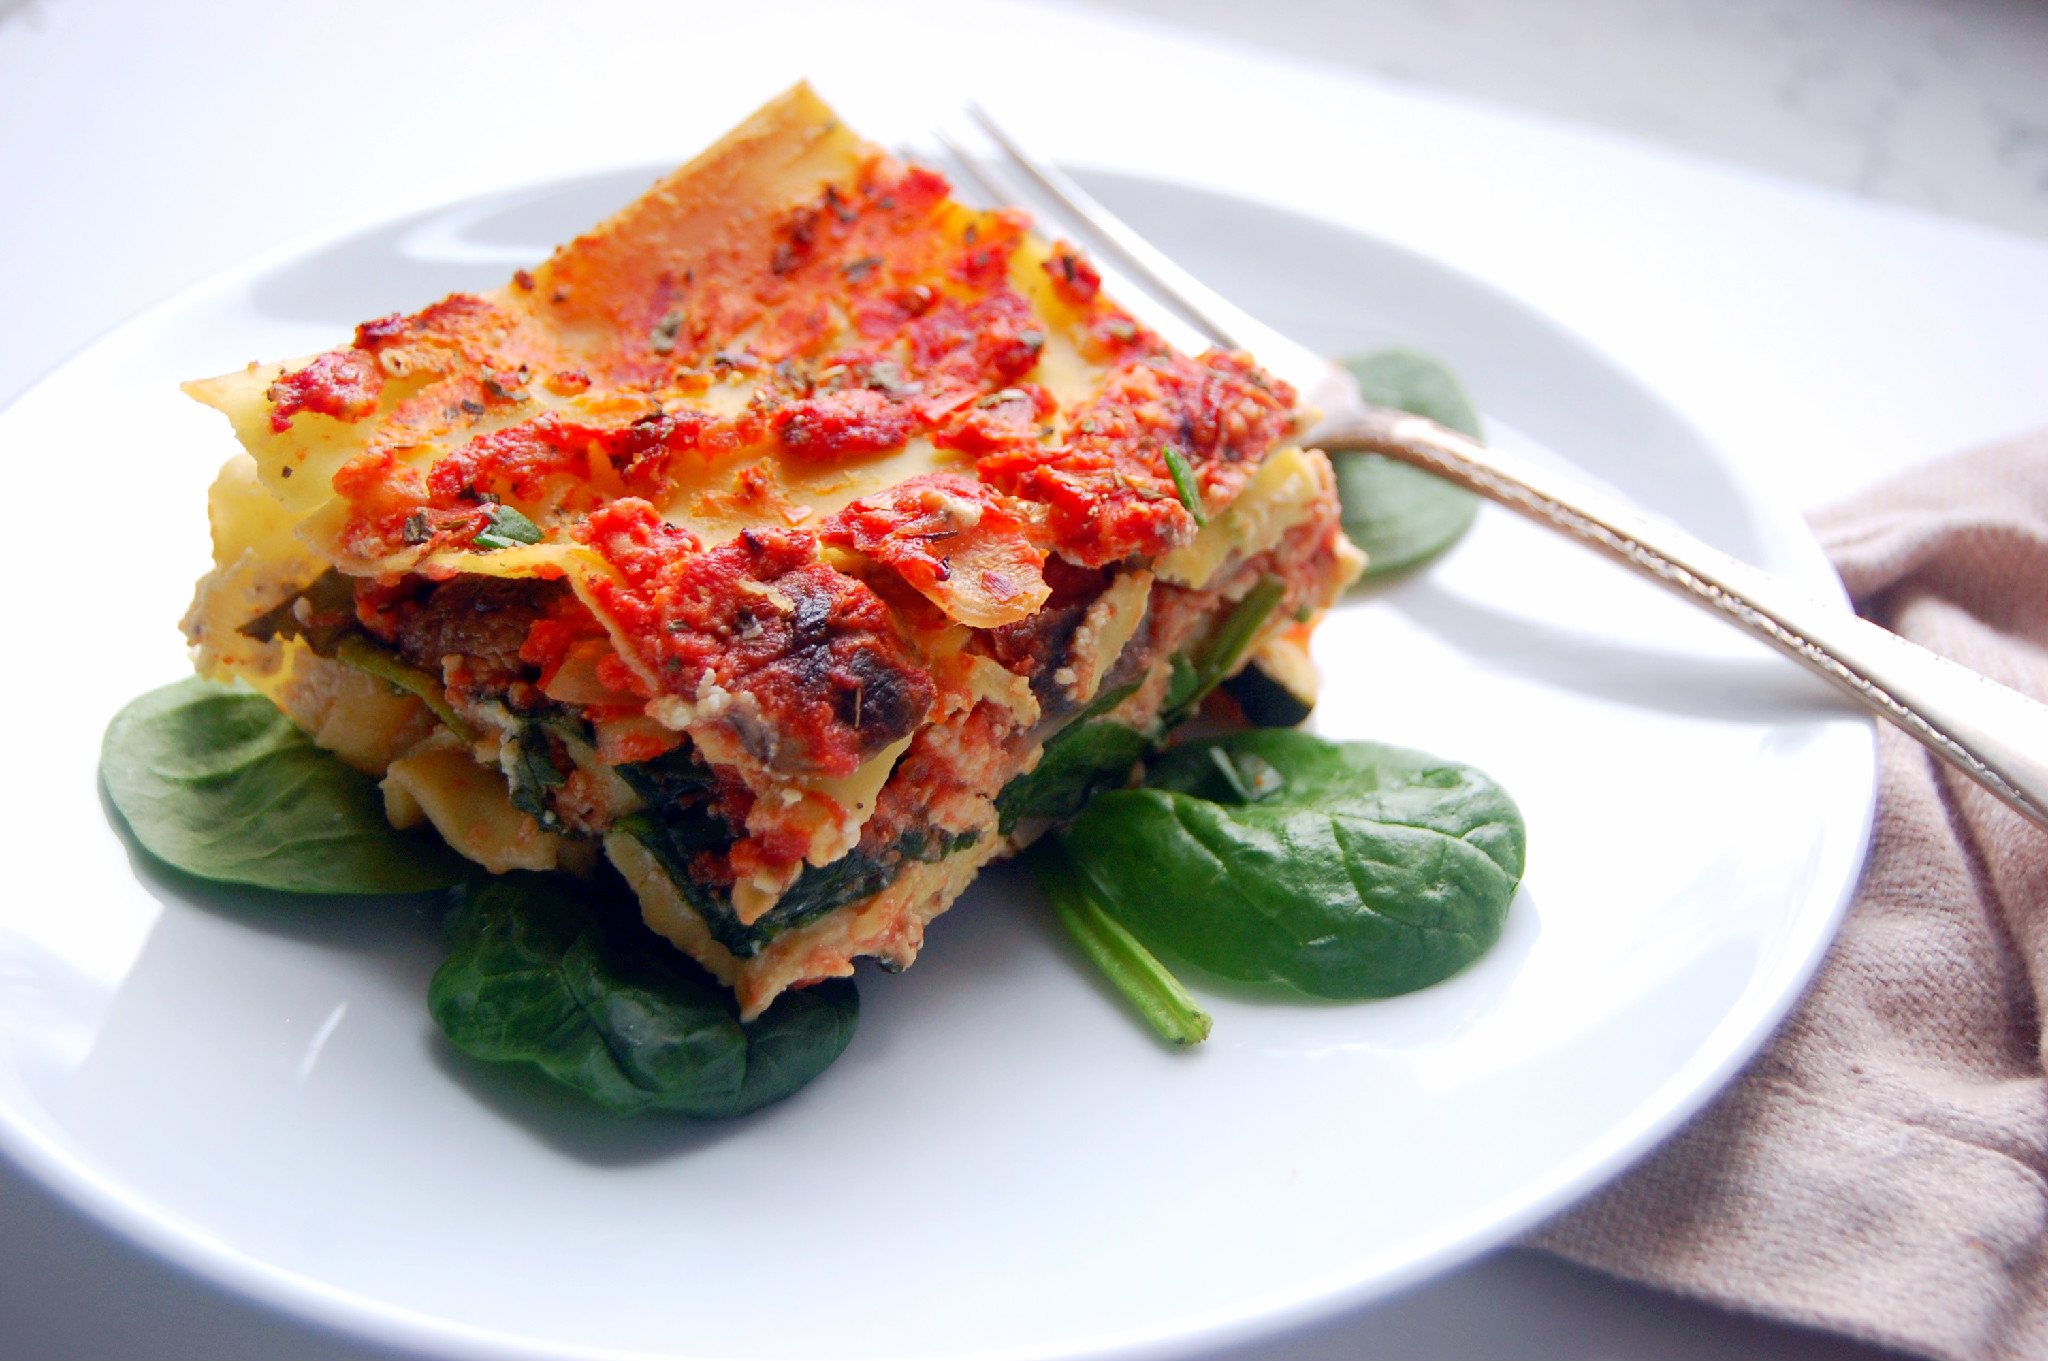 This veggie-packed high protein lasagna recipe is the perfect one pan meal - packed with ground turkey, tofu ricotta, and lots of veggies! #dairyfree | uprootkitchen.com